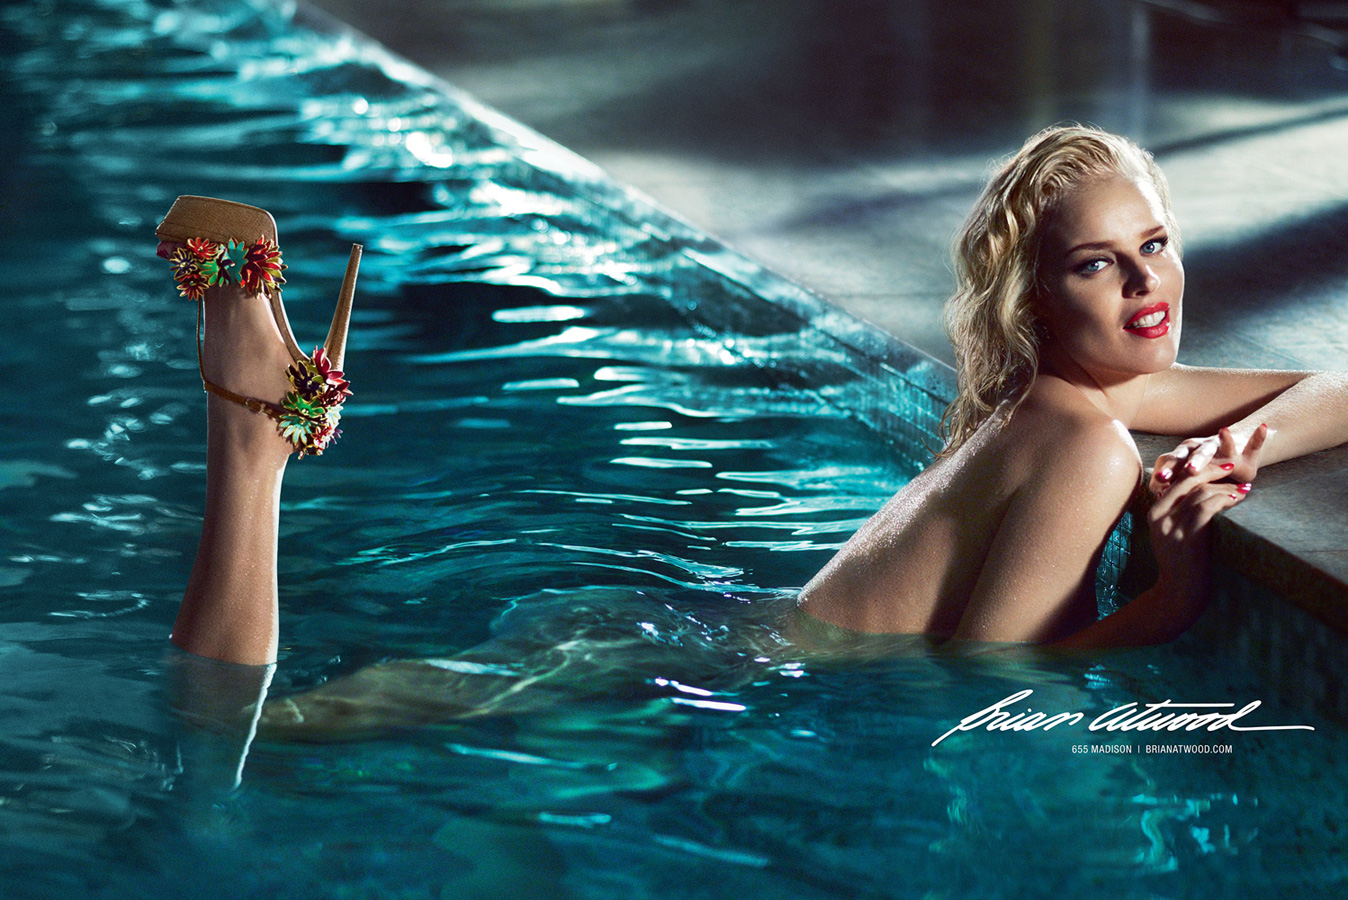 Photography by Mert and Marcus